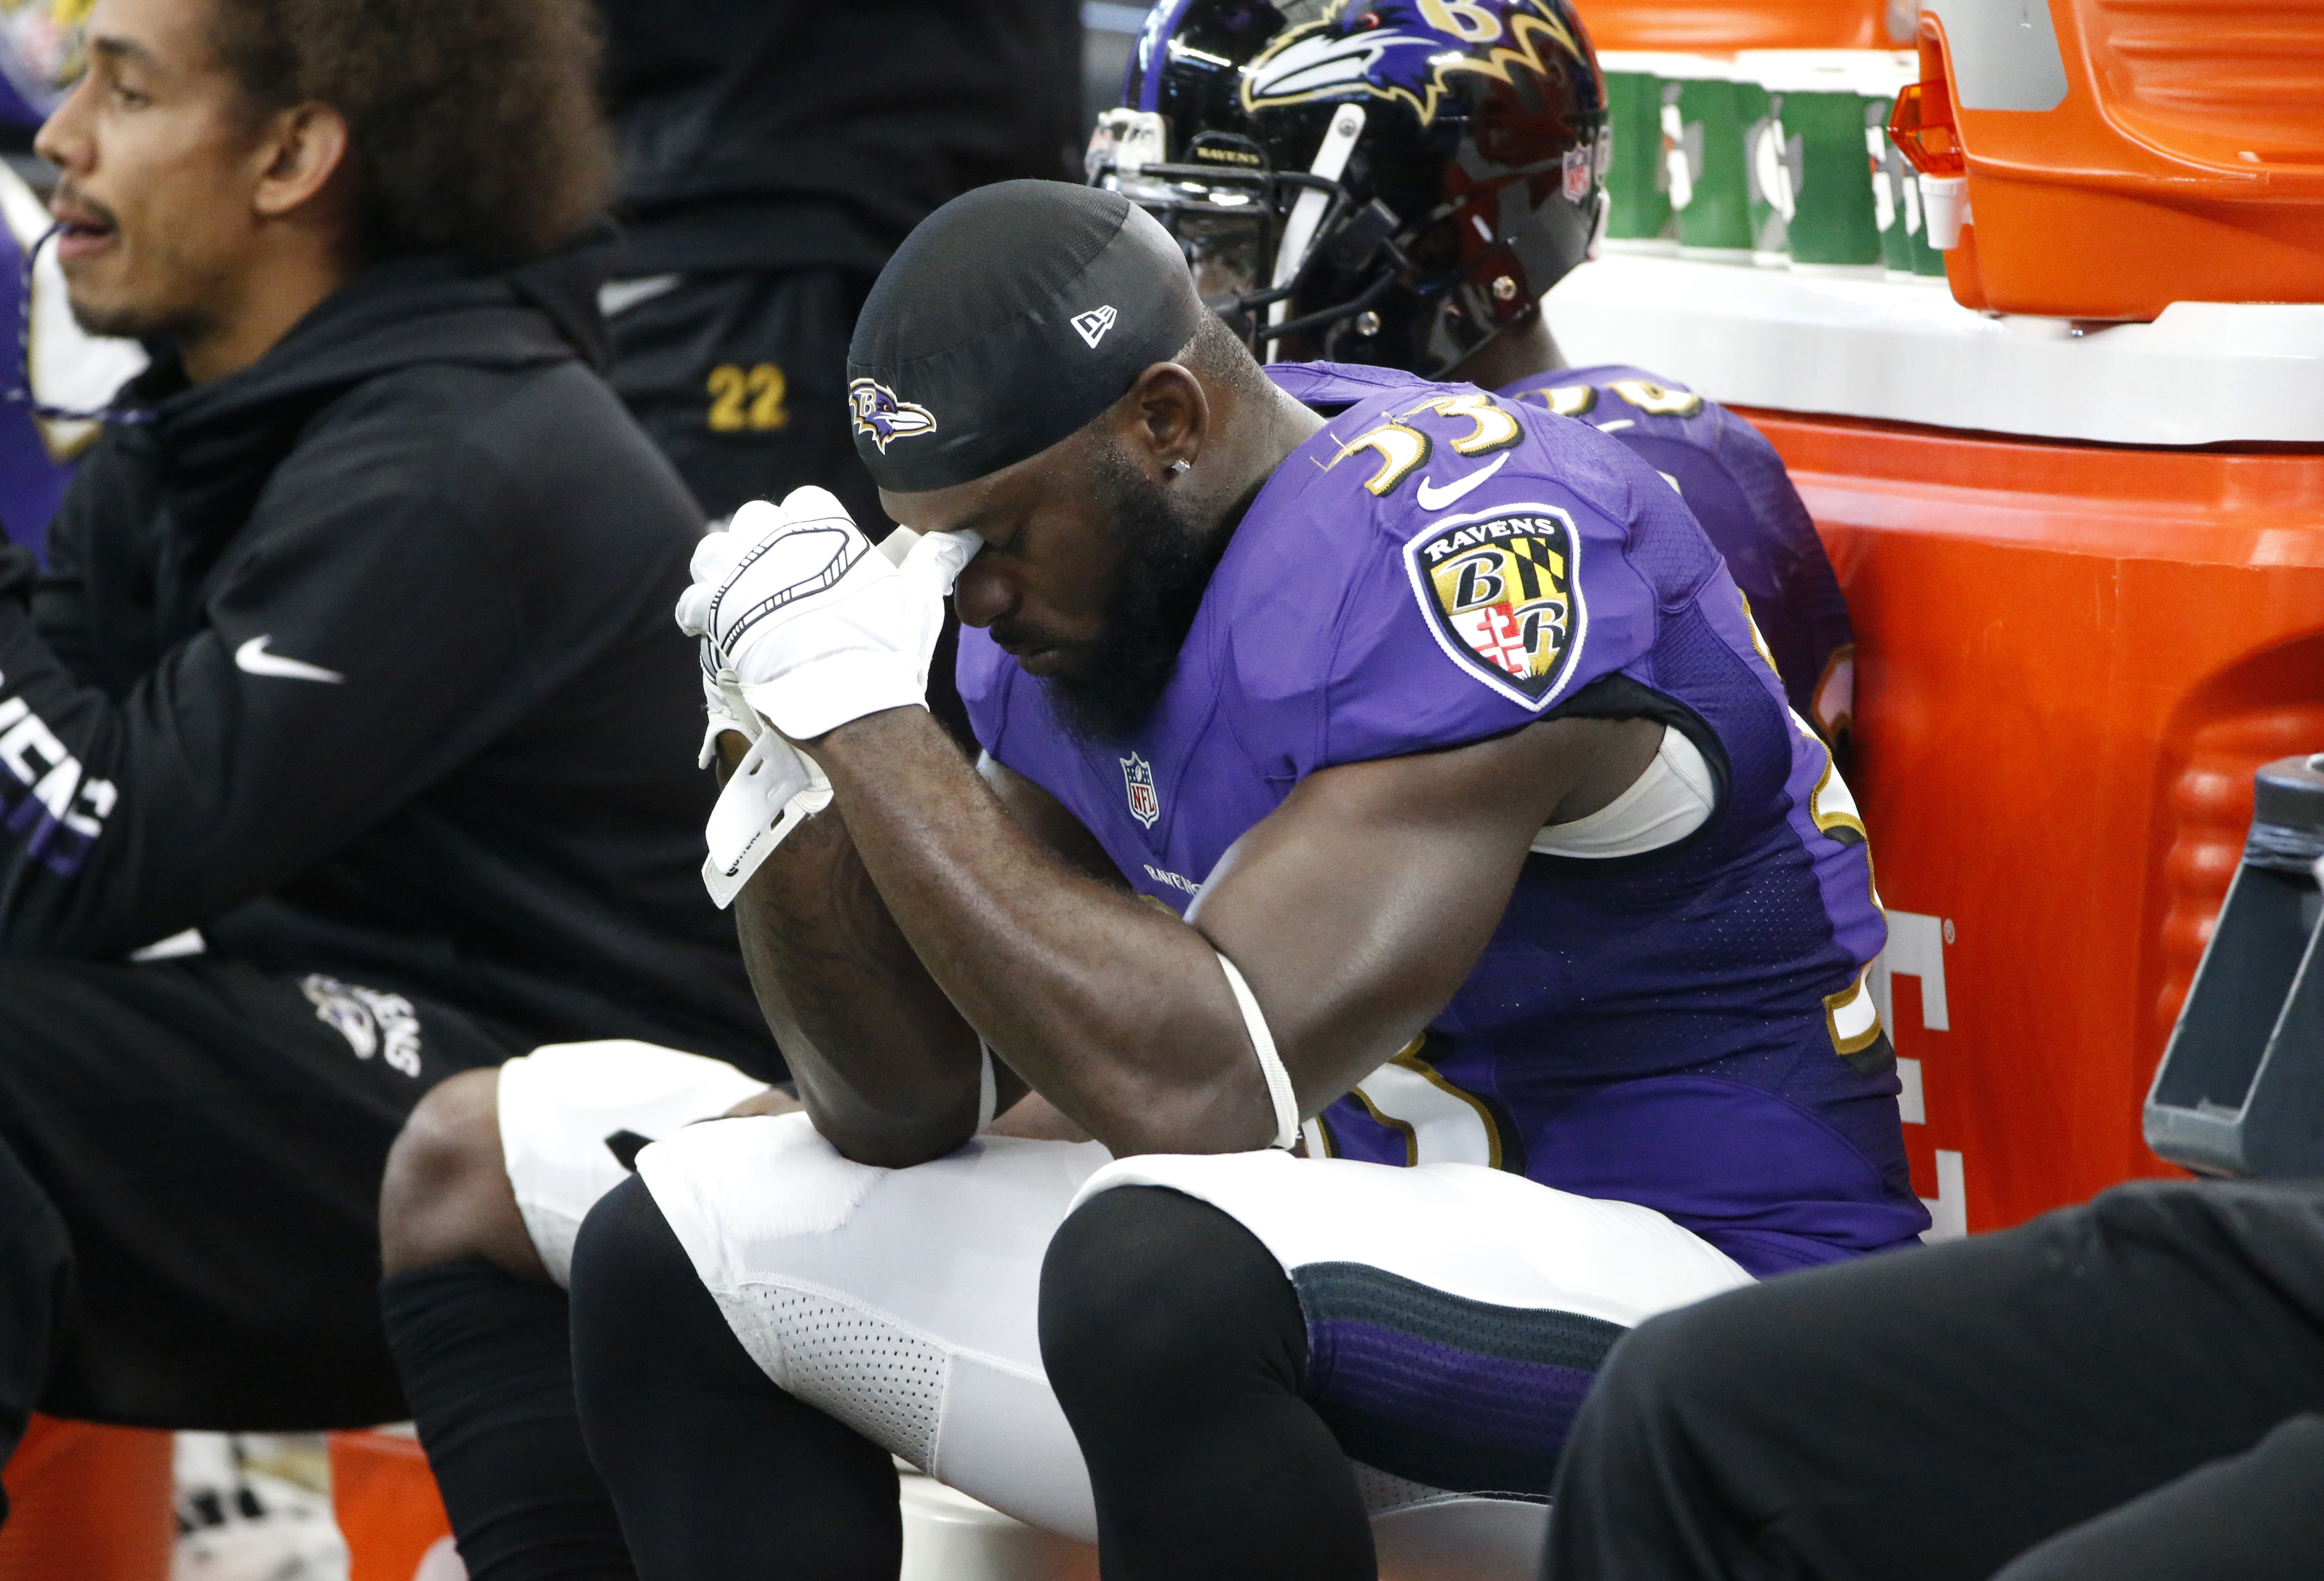 Baltimore Ravens' Matt Elam sits on the bench late in the second half of an NFL football game against the Dallas Cowboys on Sunday, Nov. 20, 2016, in Arlington, Texas. (AP Photo/Ron Jenkins)